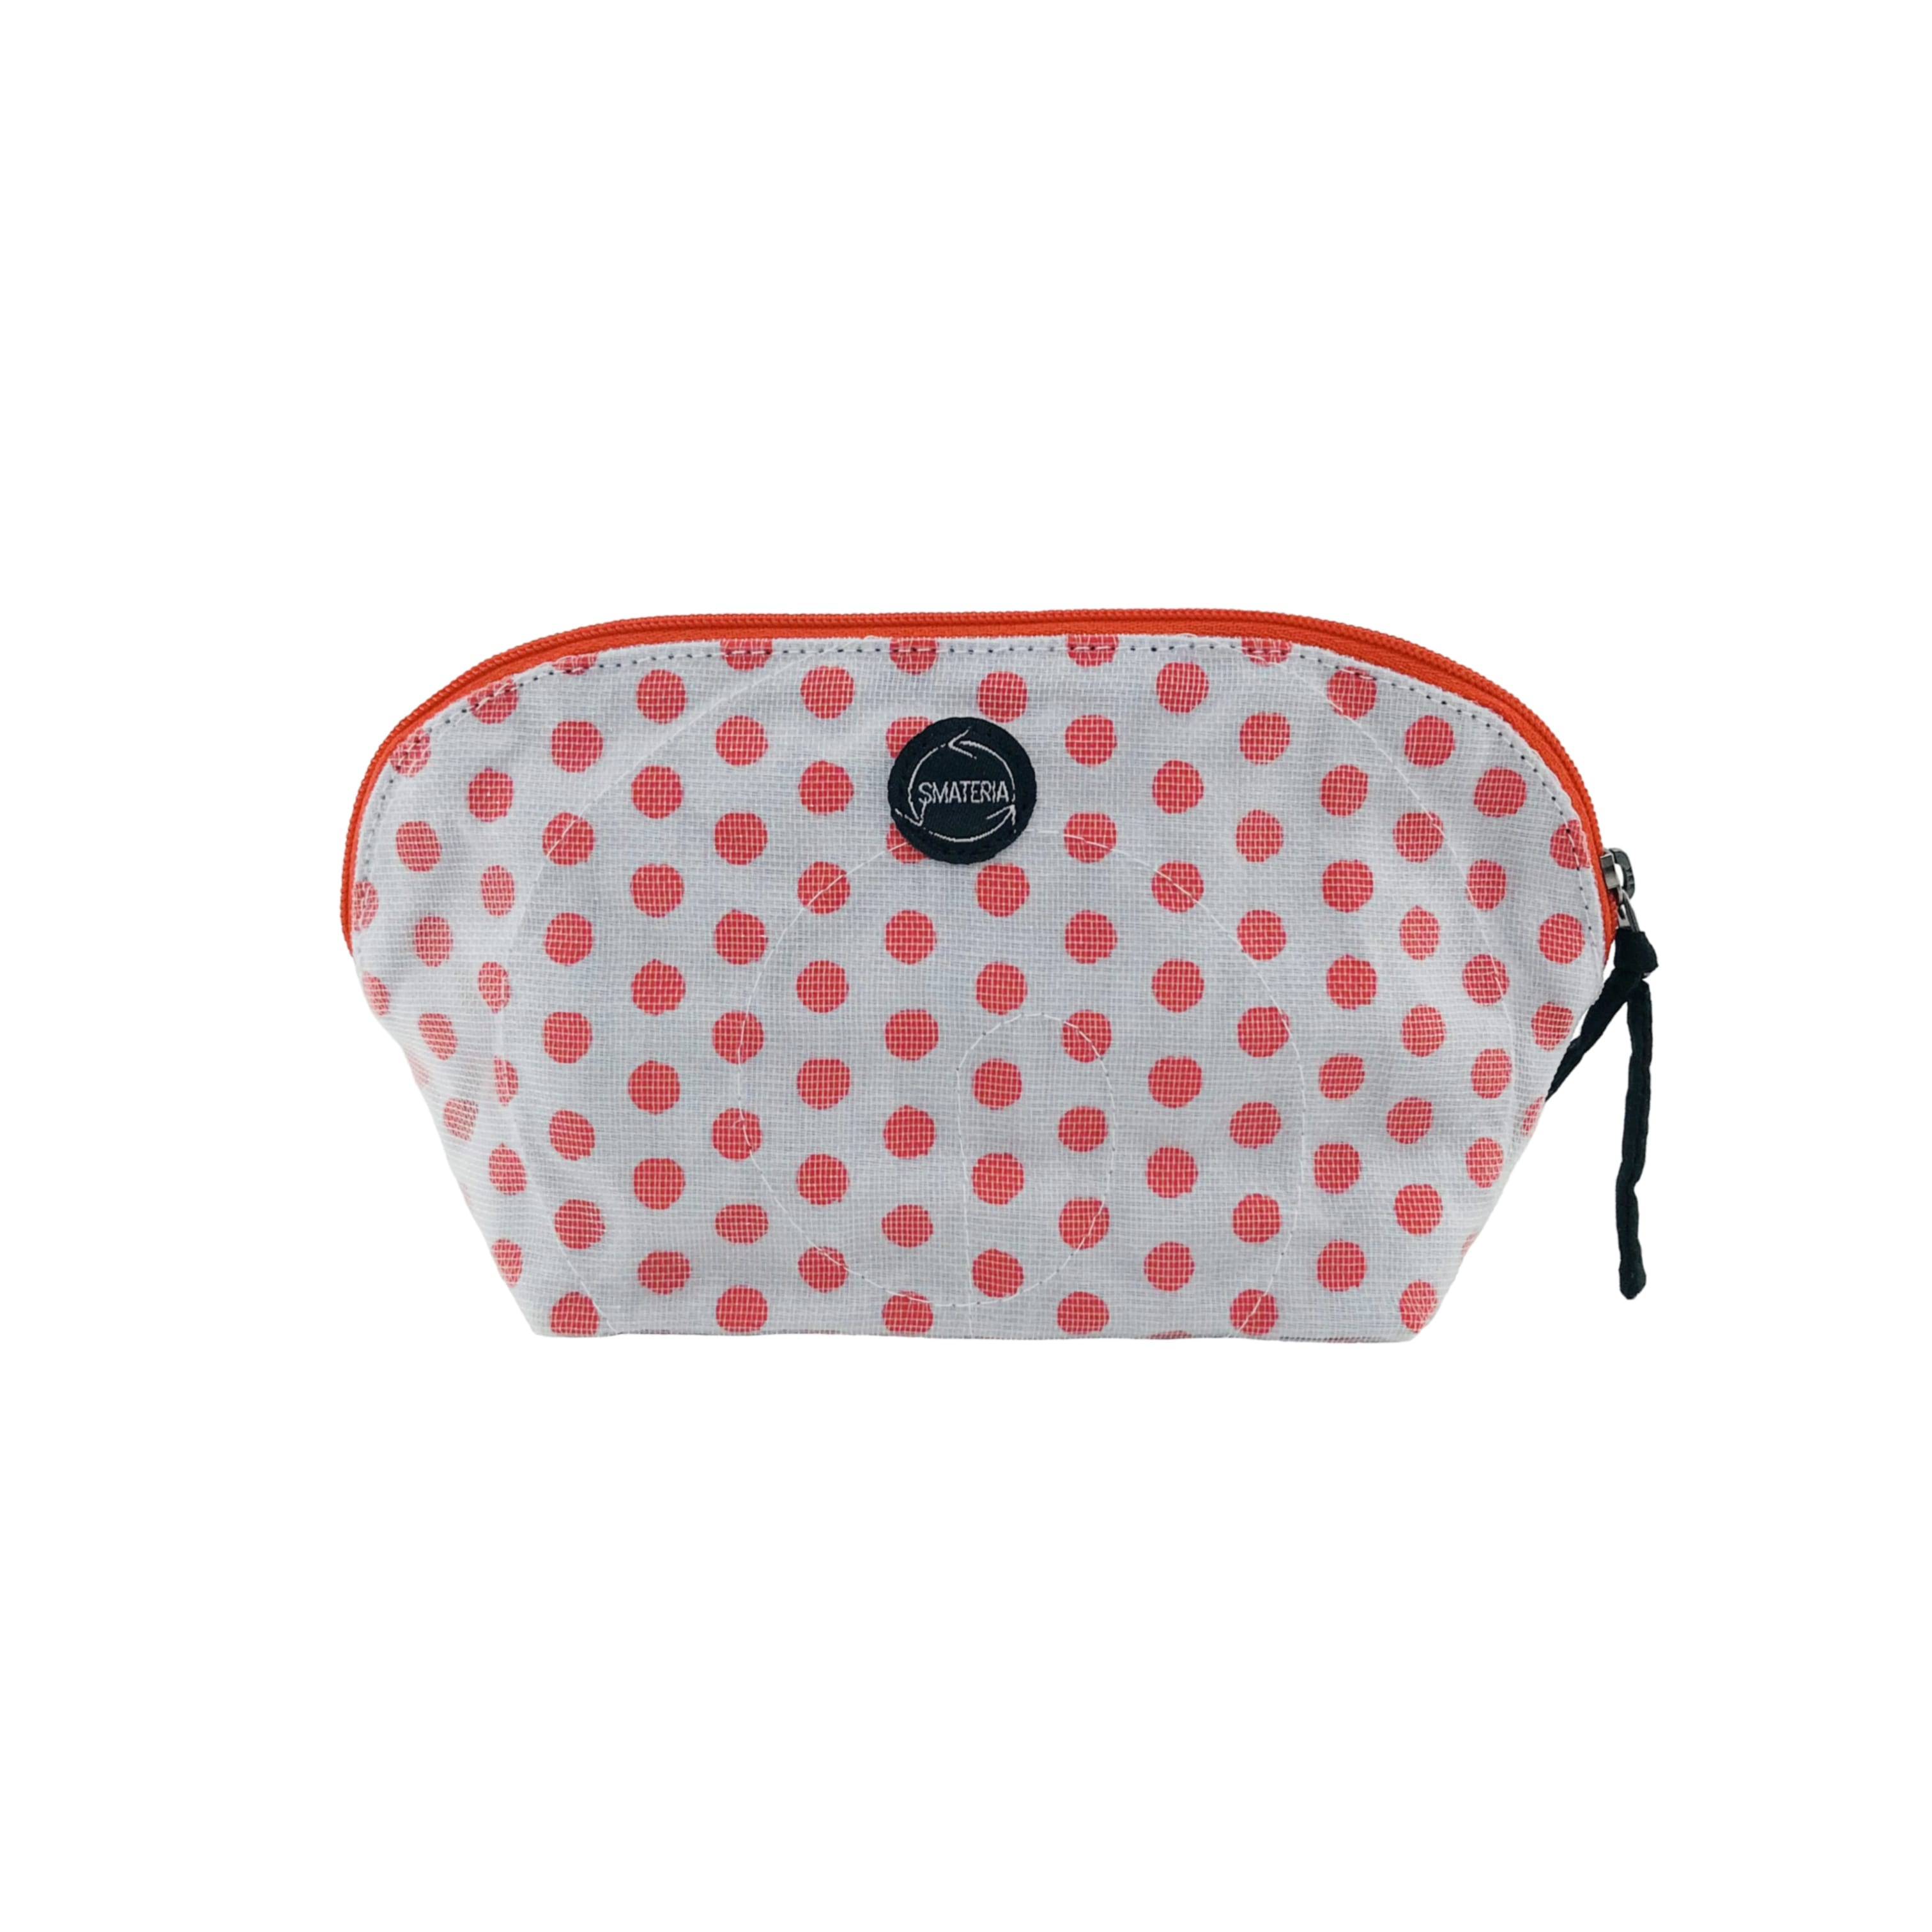 La Trousse de maquillage - Petit - Pois rouges